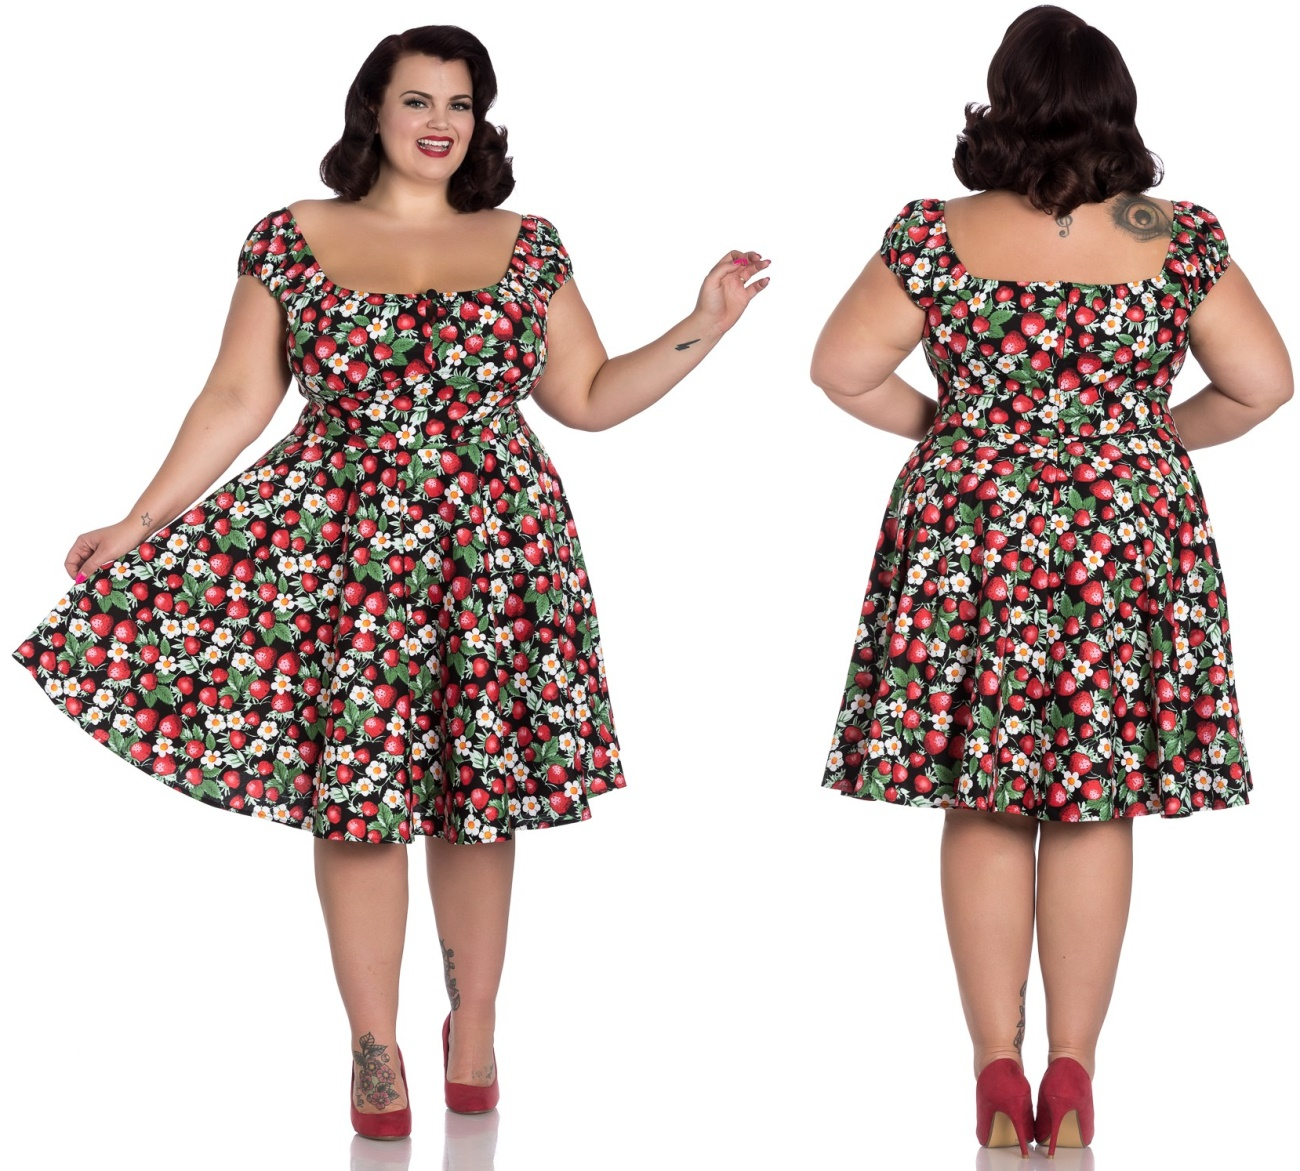 4c6828287f959b Strawberry/Erdbeere Sundae Mid Dress Rock n Roll Kleid Übergrösse Hellbunny